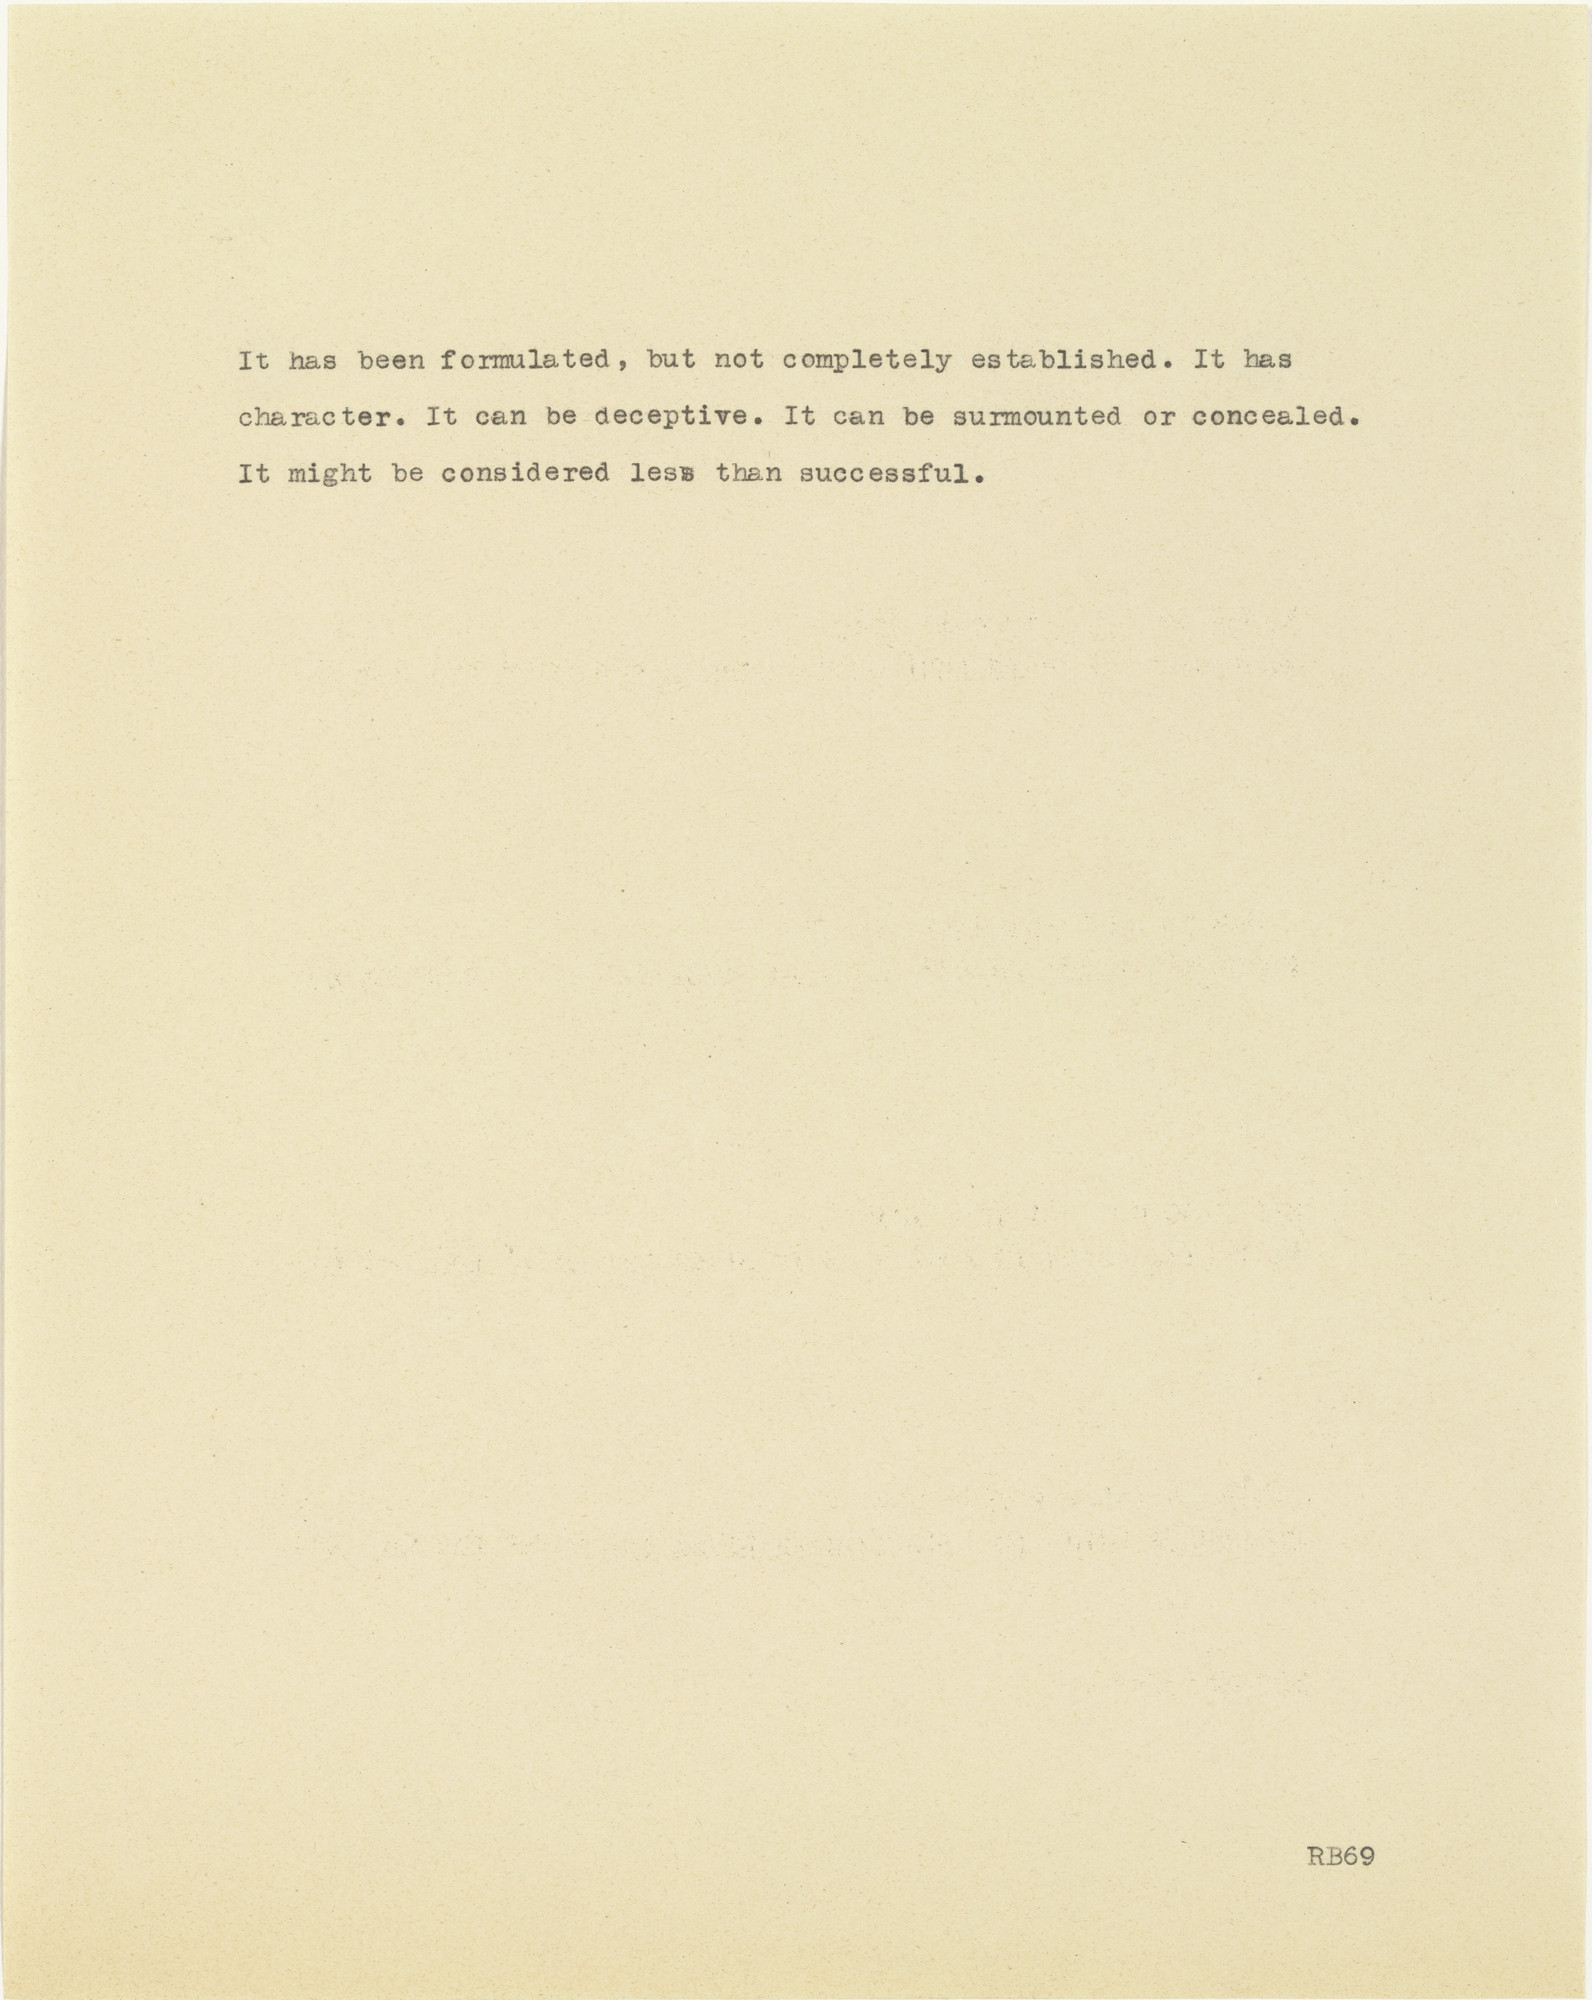 Robert Barry. Untitled (It has been formulated...). 1969